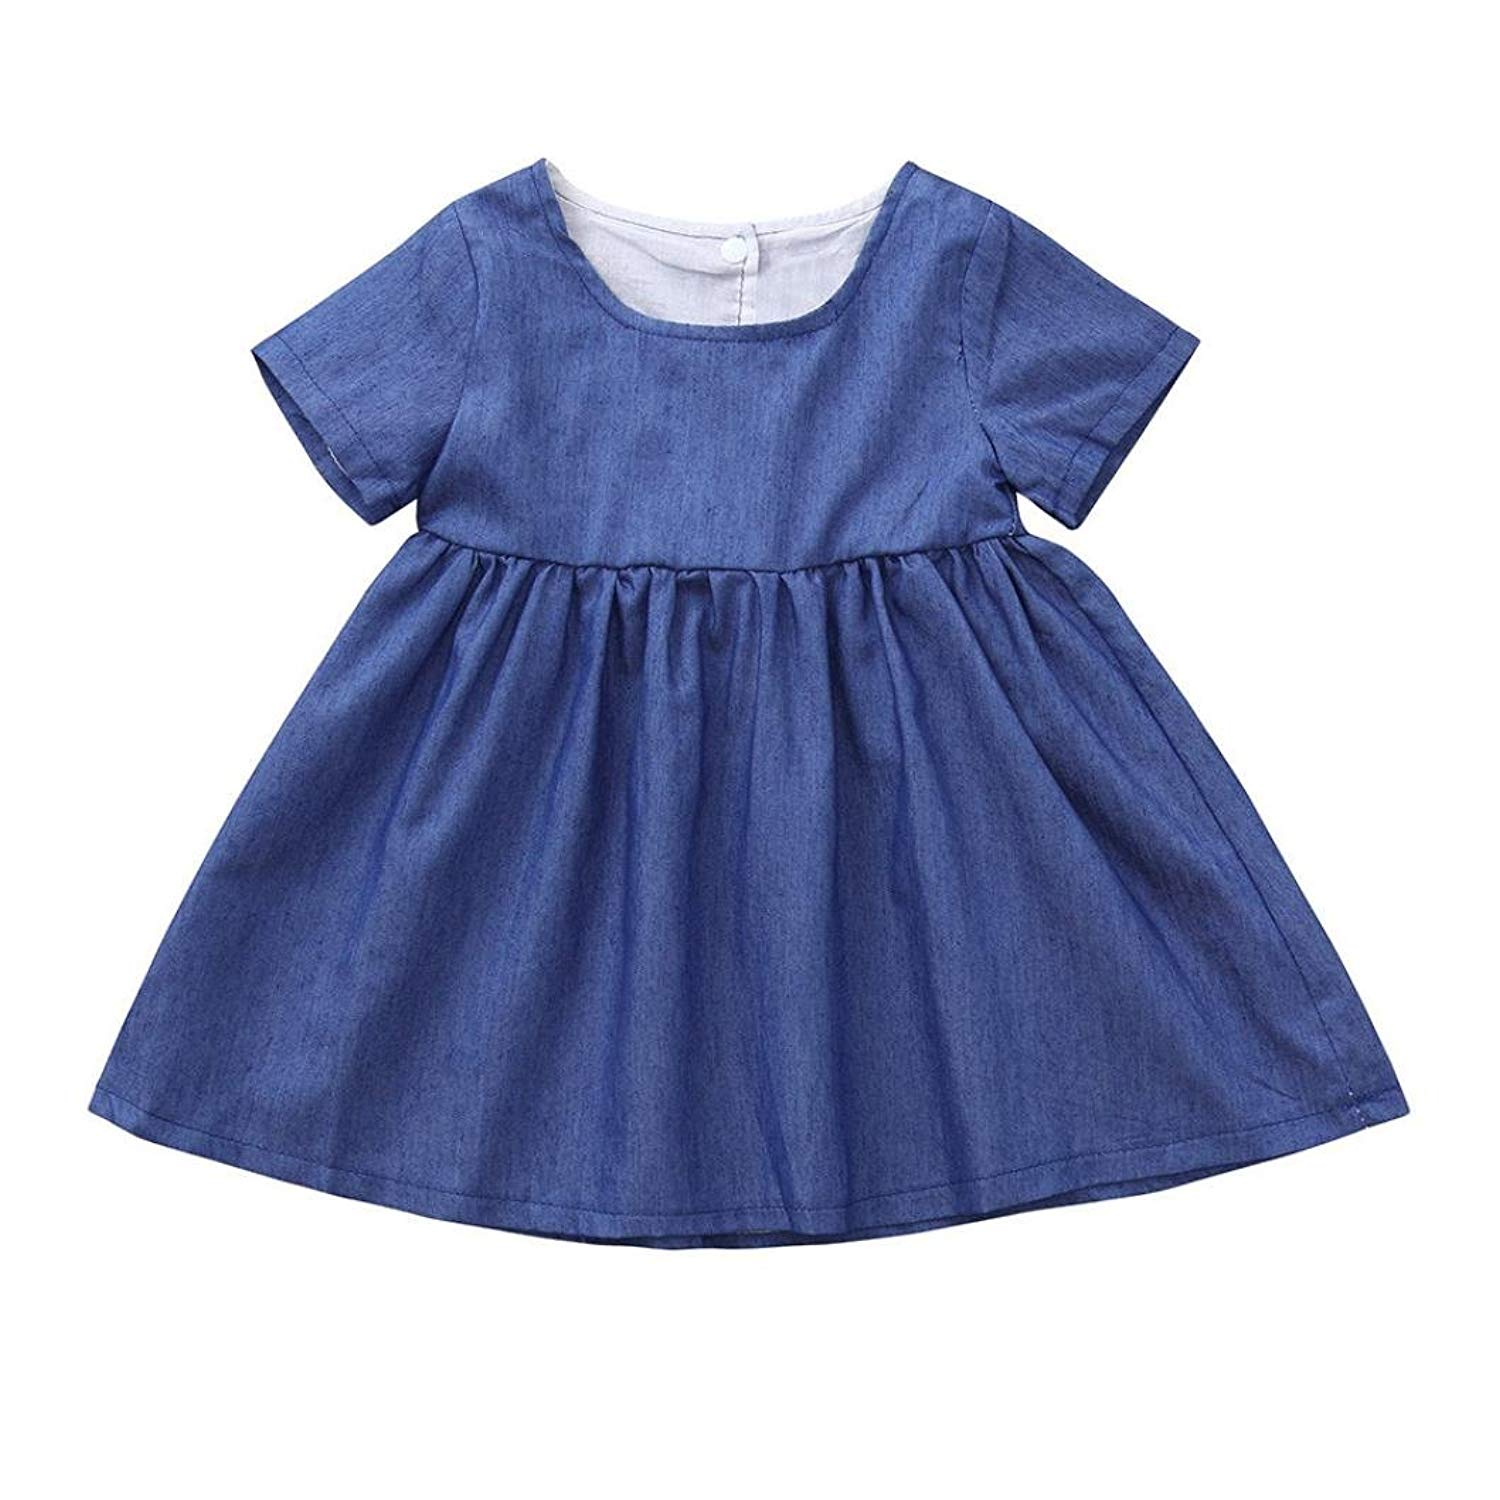 4fc1e691a88 Get Quotations · Fabal Infant Baby Girl Summer Sleeveless Solid Denim  Clothes Romper Dress